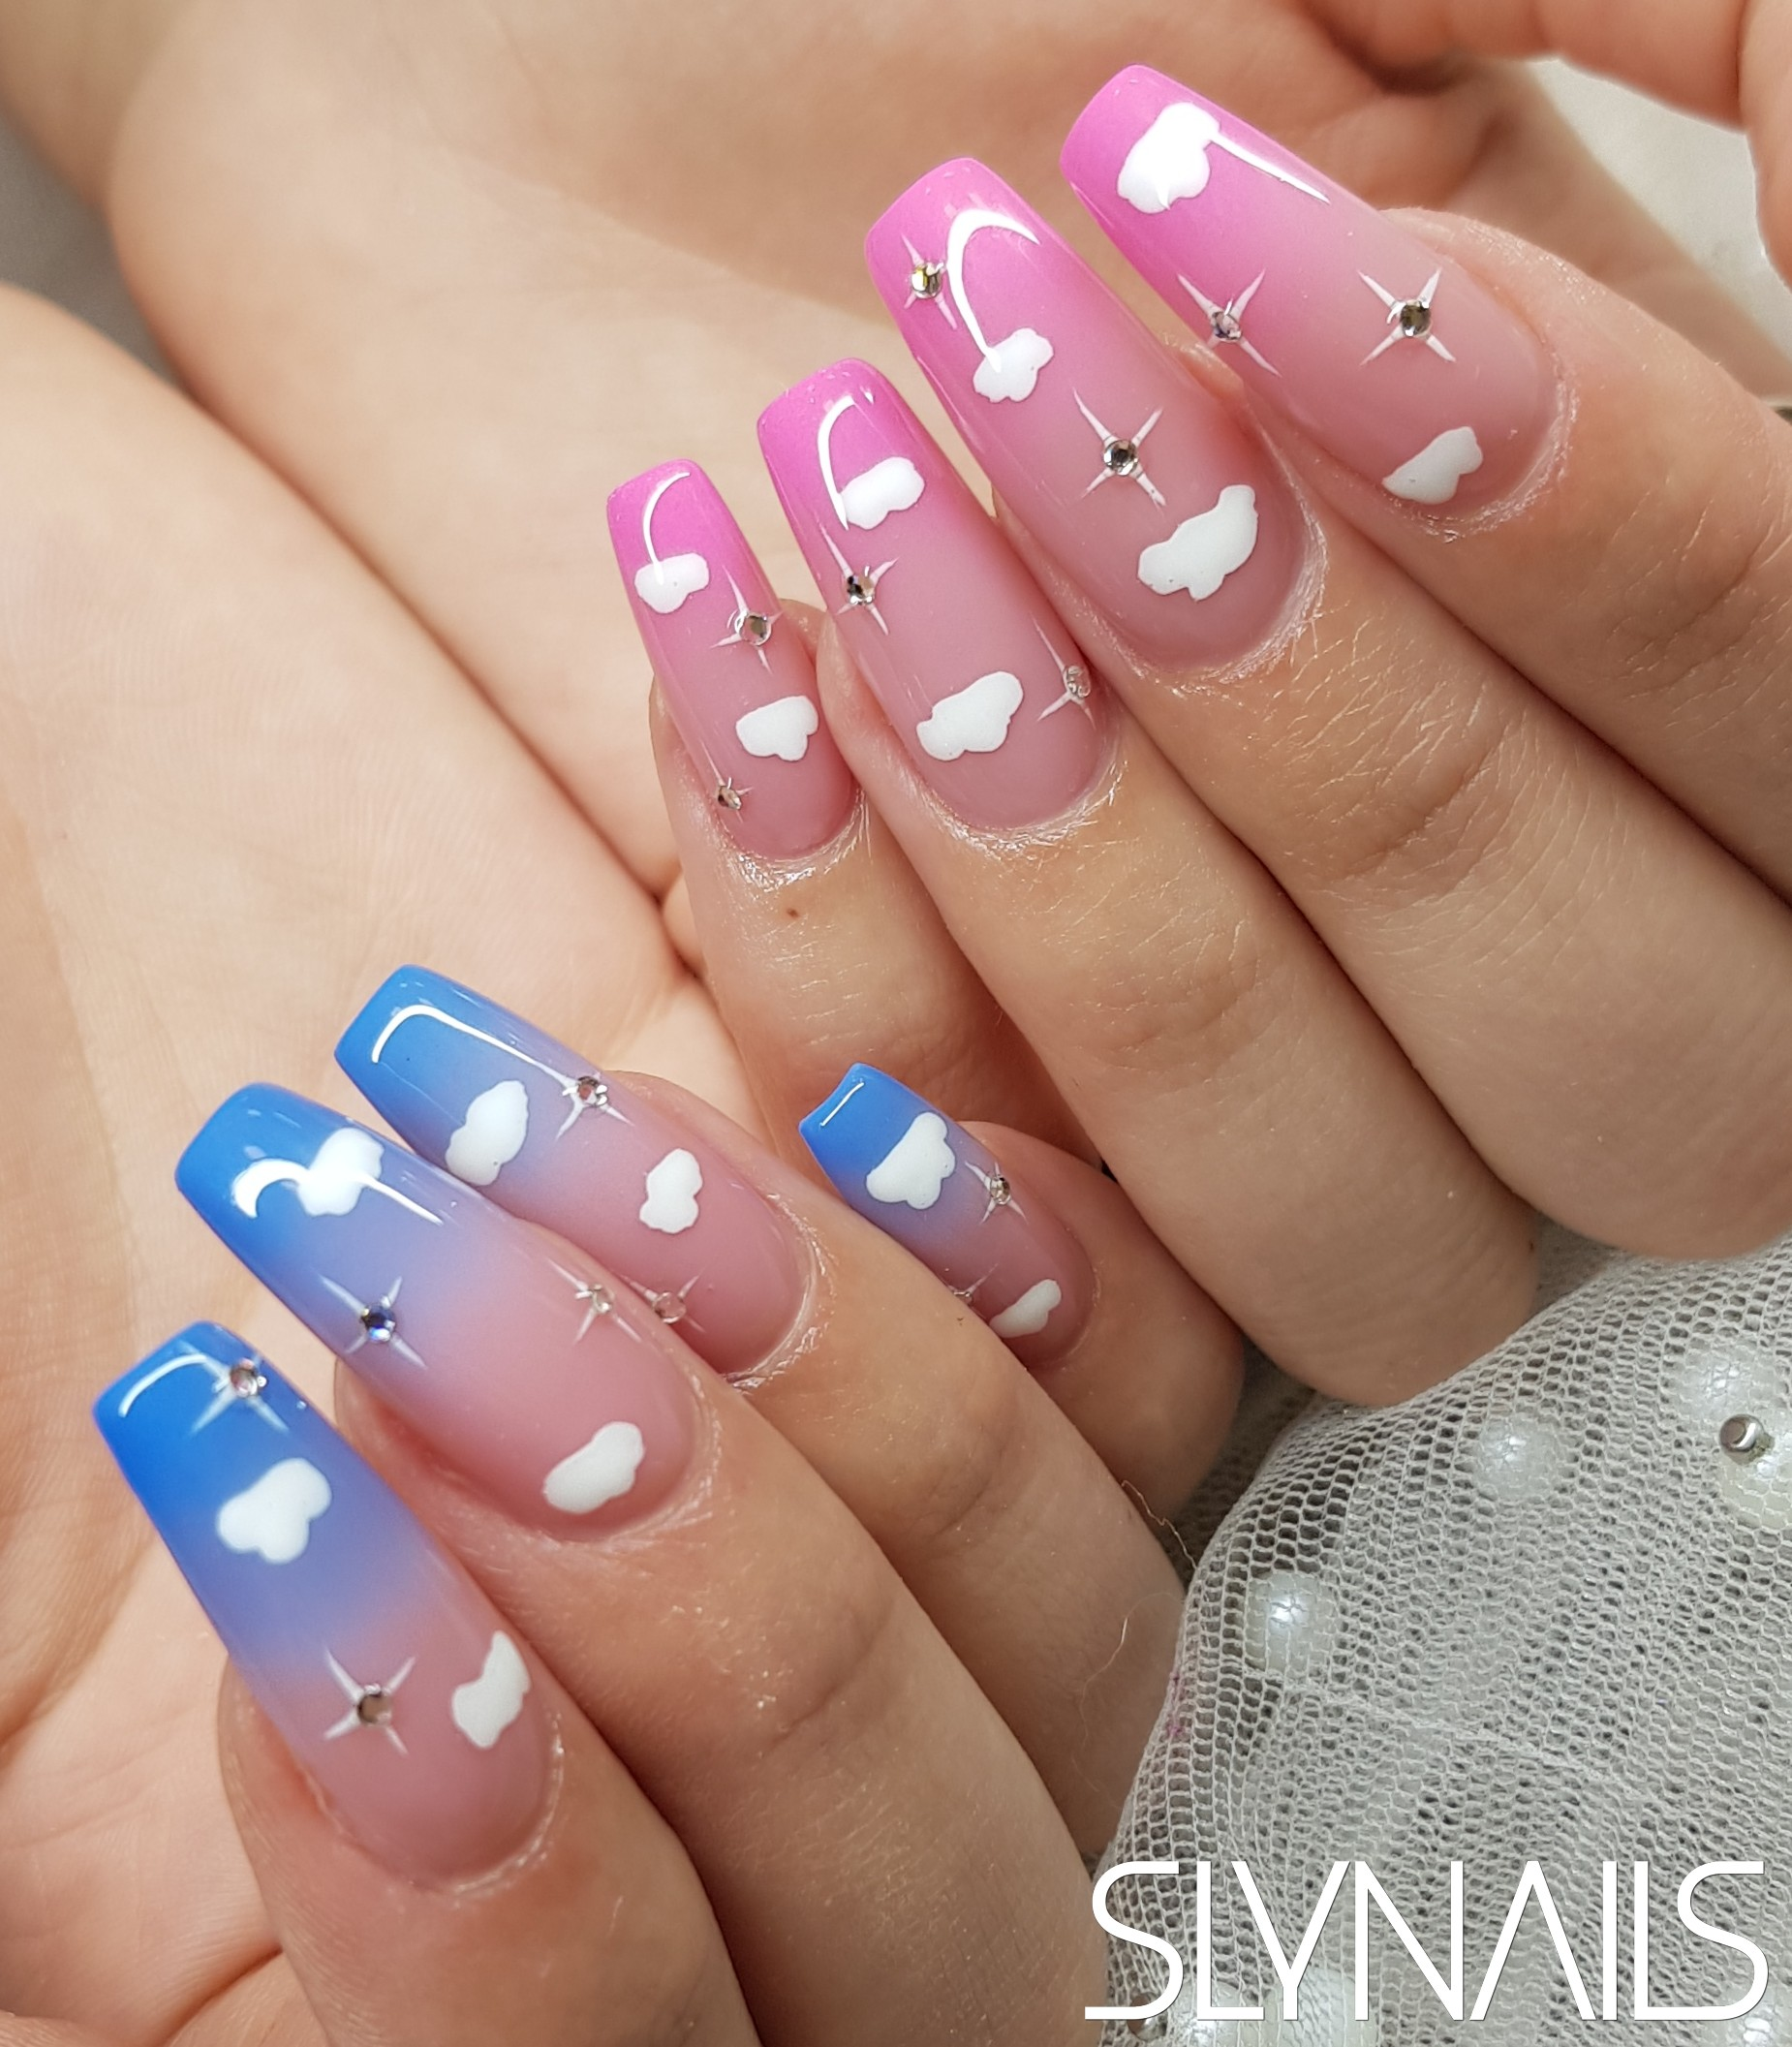 Nail extension, Longer nails, Ombre, Blue, Pink, Art gel decorations, Swarovski